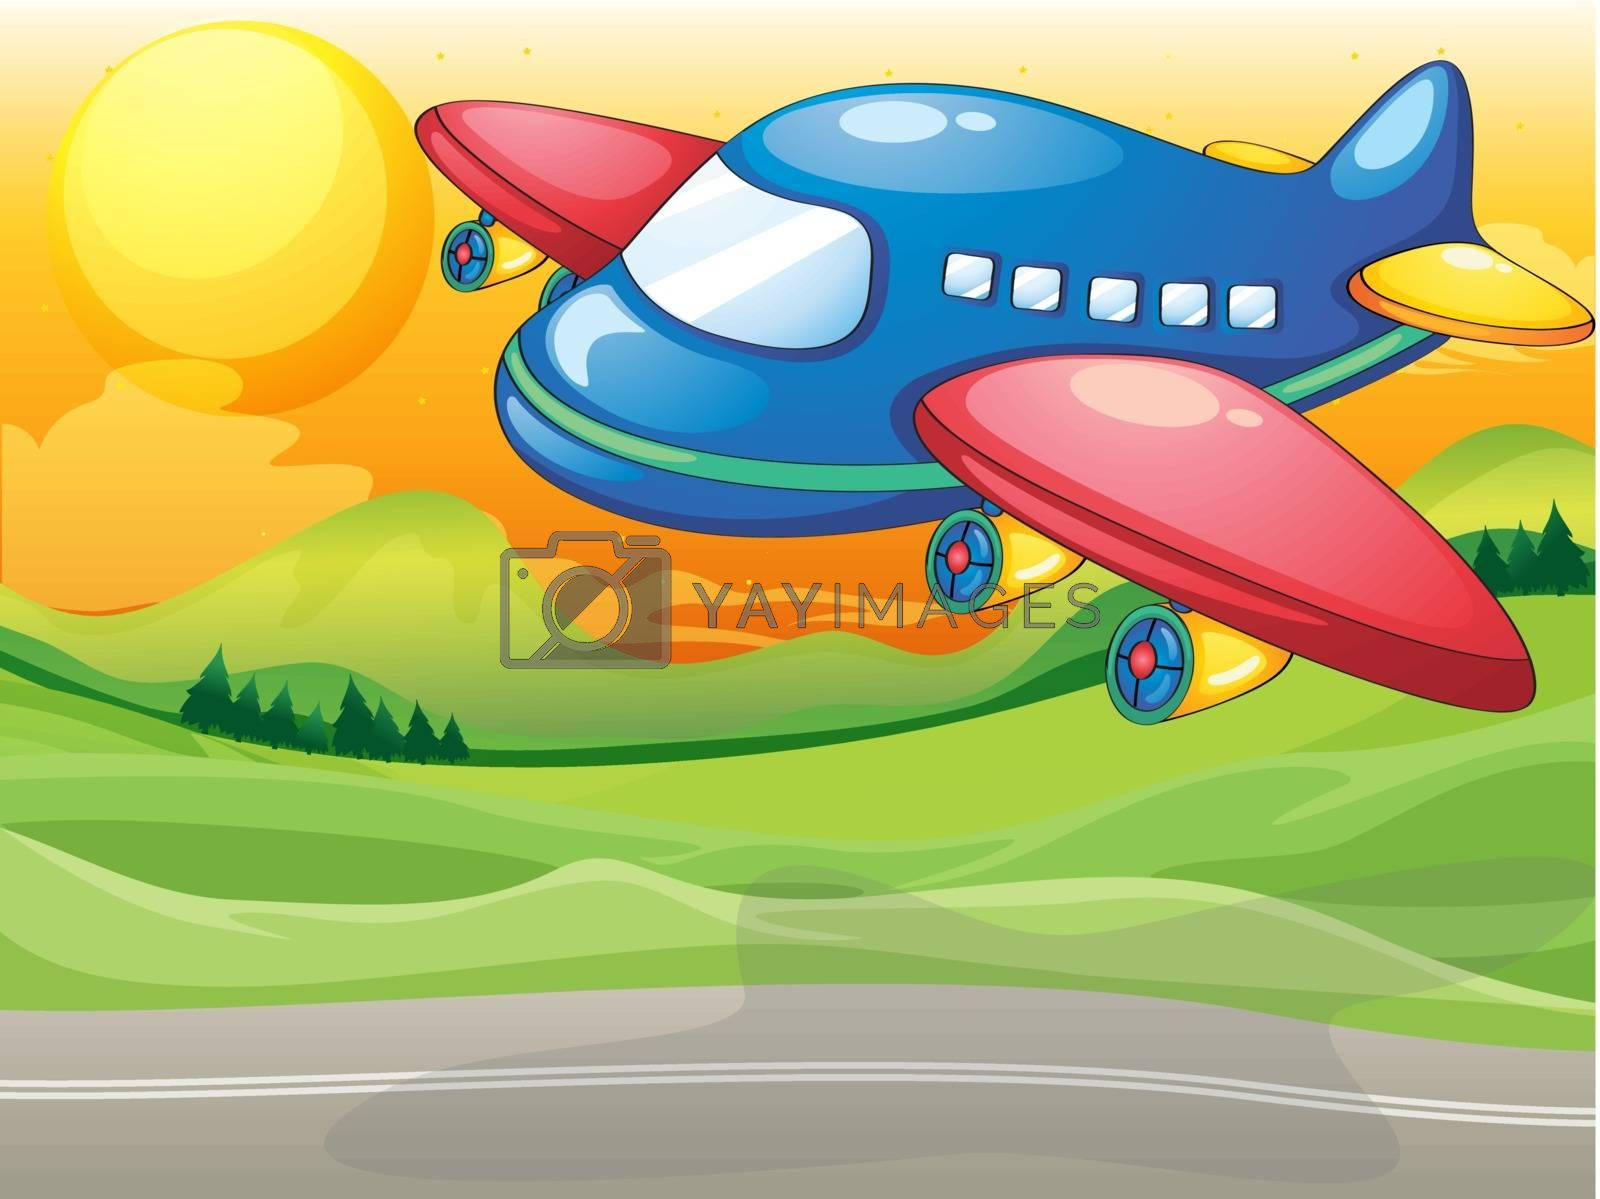 Illustration of a blue airplane above the road